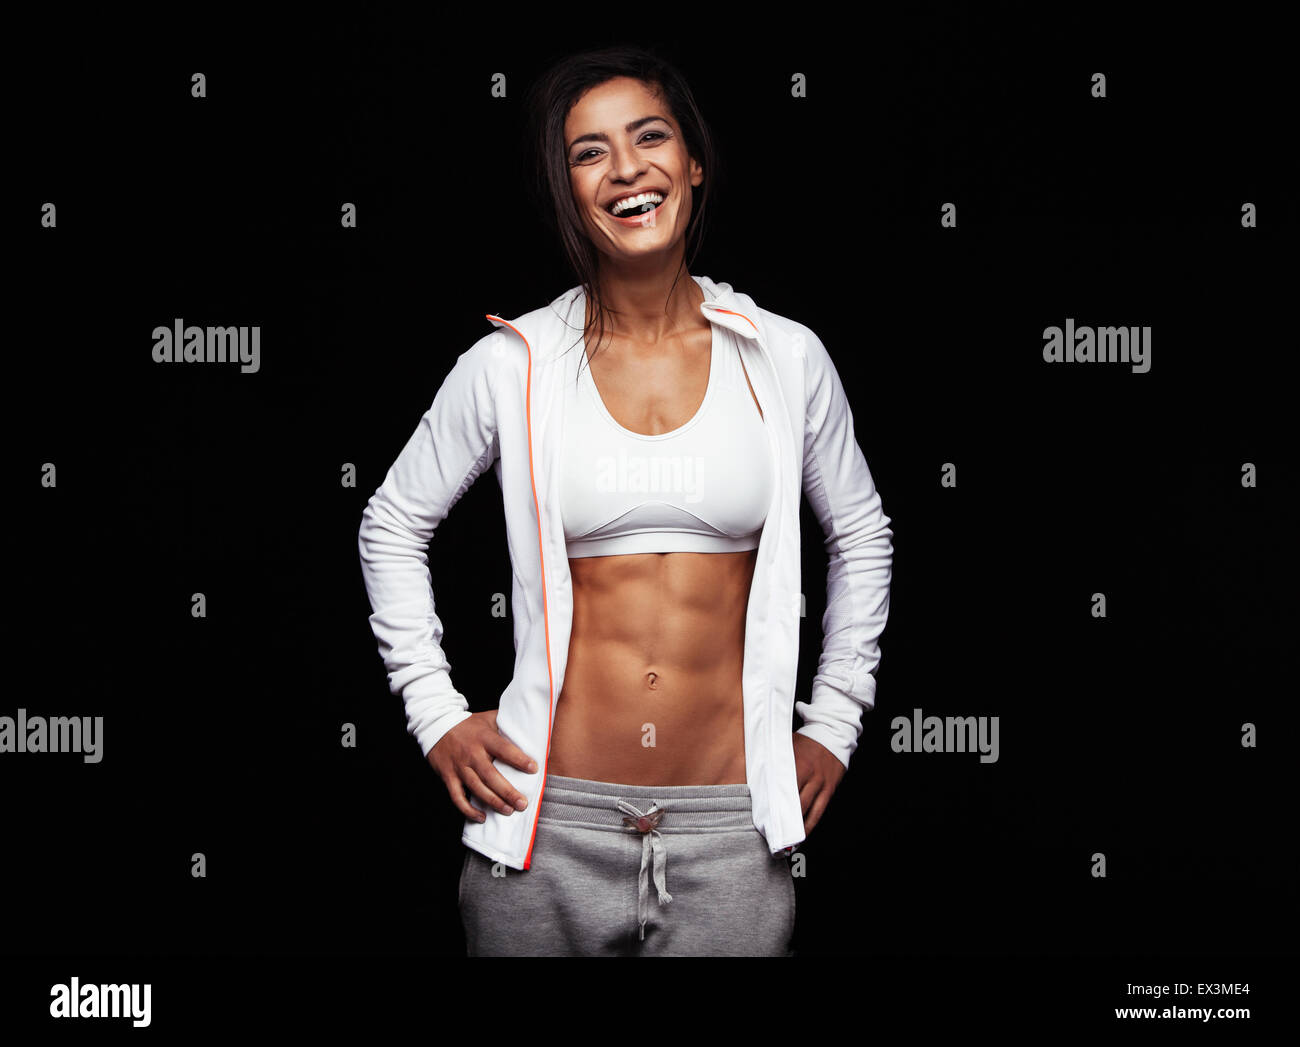 Smiling sportswoman in sportswear on black background. Caucasian fitness model looking happy with her hands on hips. - Stock Image